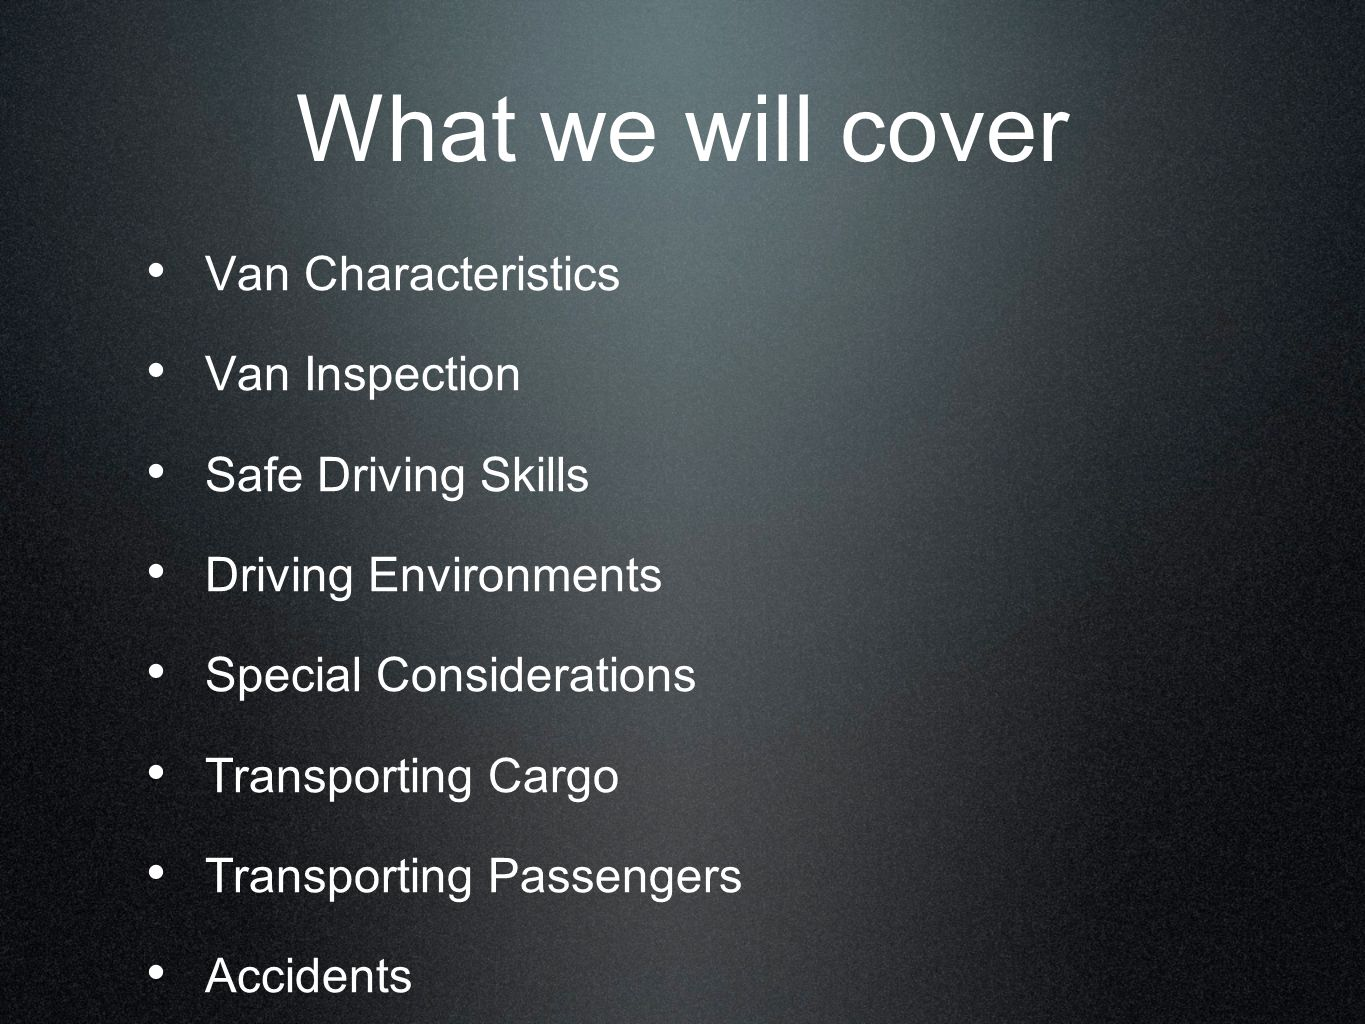 What we will cover Van Characteristics Van Inspection Safe Driving Skills Driving Environments Special Considerations Transporting Cargo Transporting